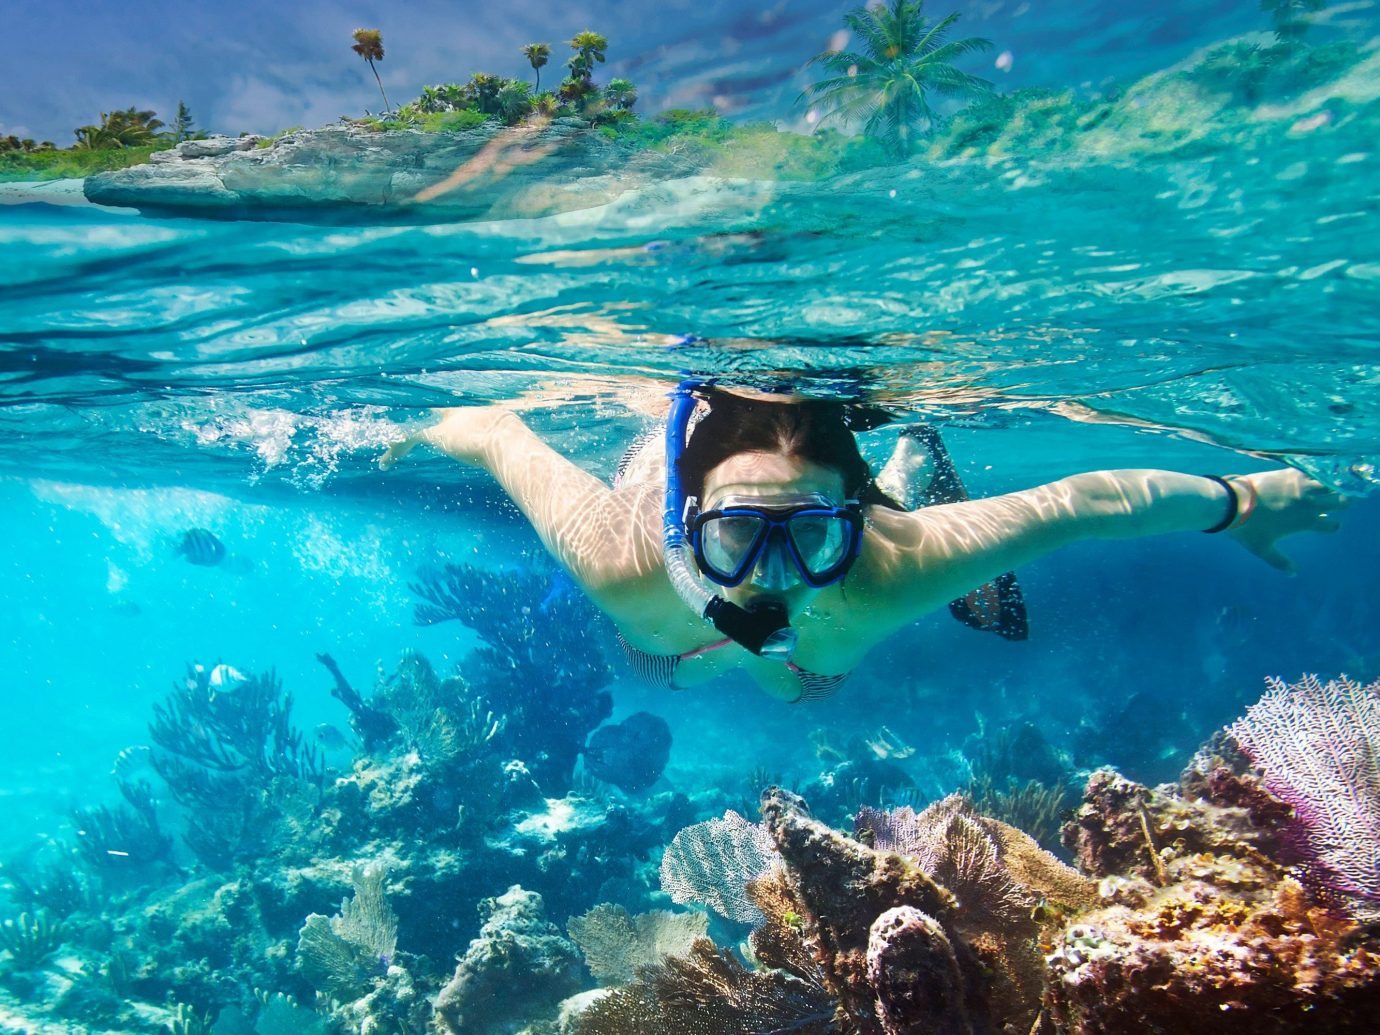 Trip Ideas water Sport swimming outdoor water sport marine biology sports Sea underwater reef coral reef Ocean biology snorkeling outdoor recreation diving recreation Scuba Diving